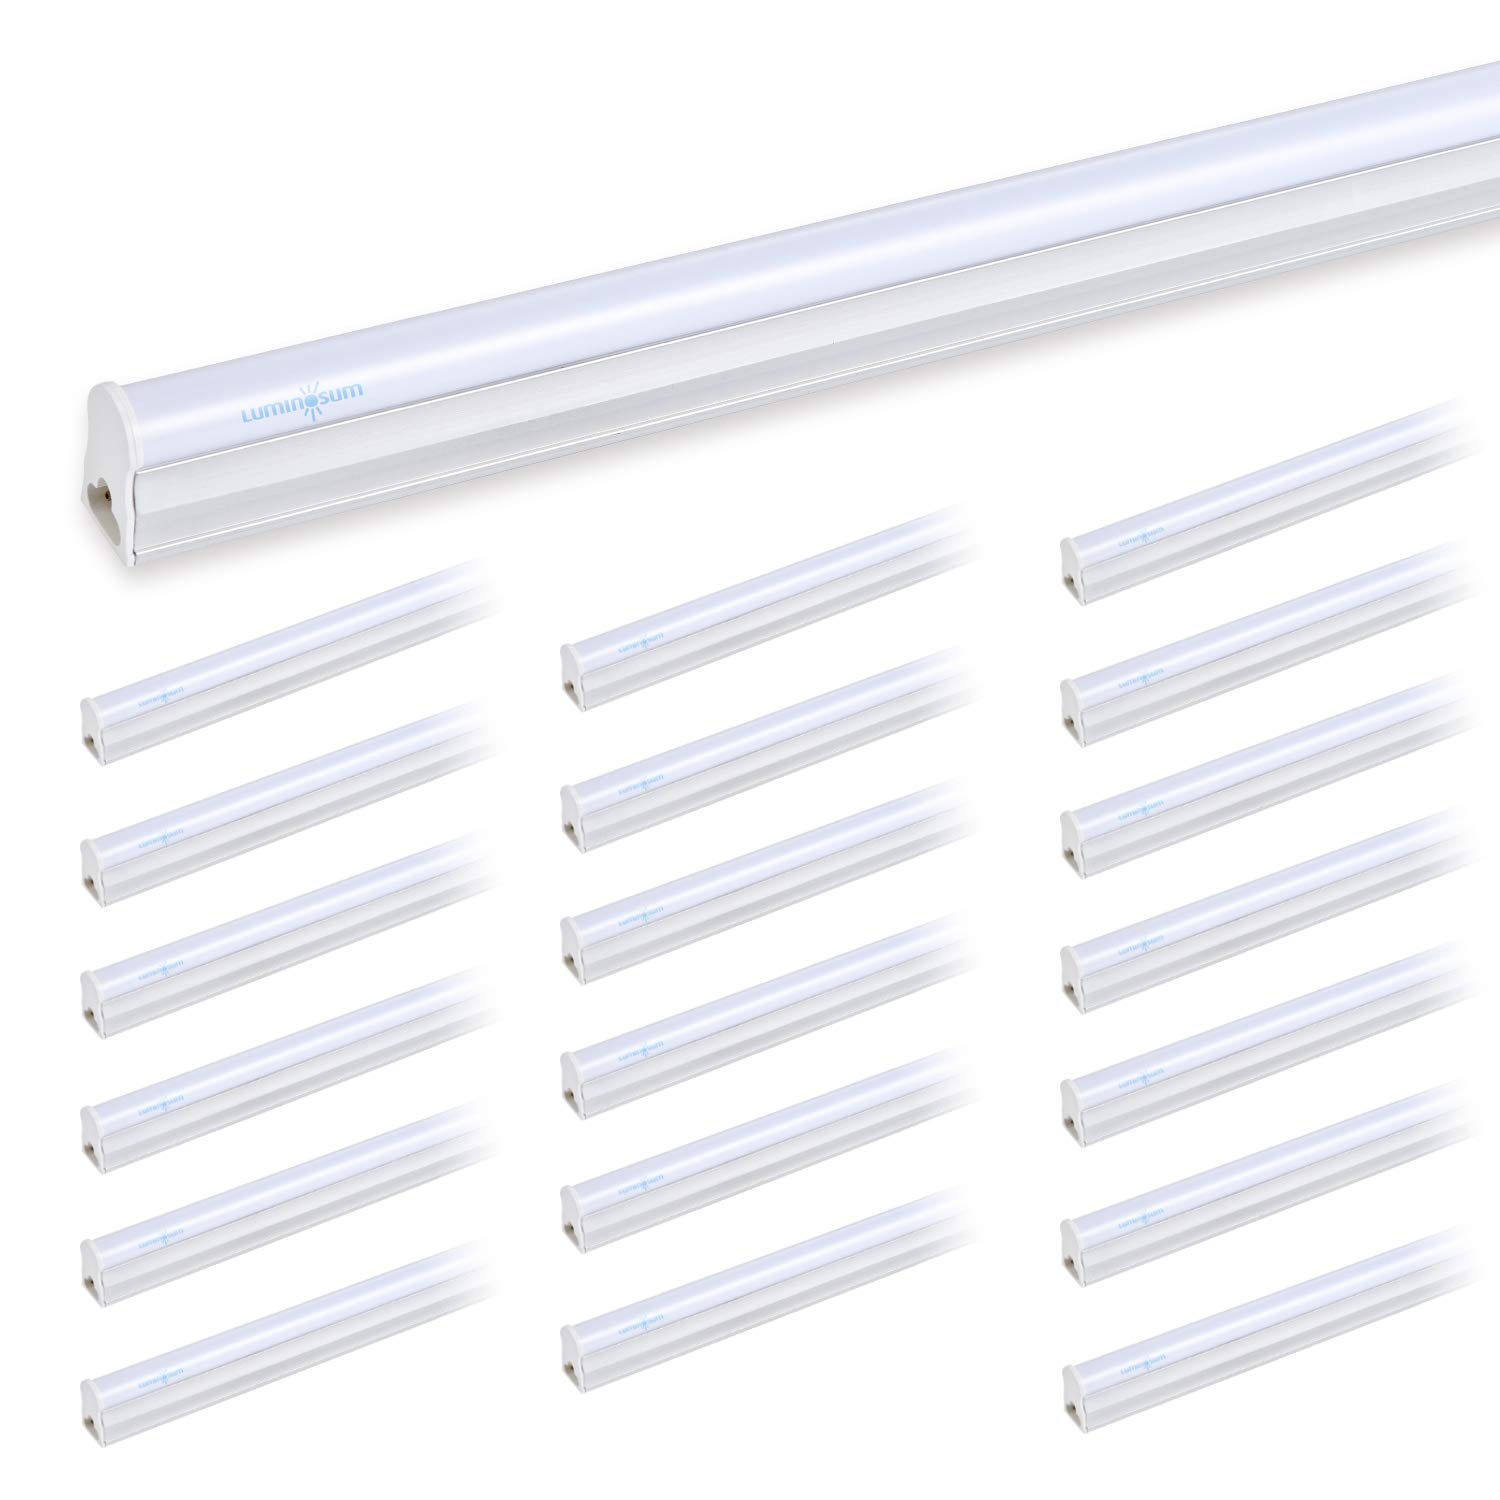 LUMINOSUM T5 LED Tube Light Integrated Single Fixture, 3FT 14W 1300lm, 6000k Cool White, Frosted Cover, Utility Shop Light, Ceiling and Under Cabinet Light, 20-pack